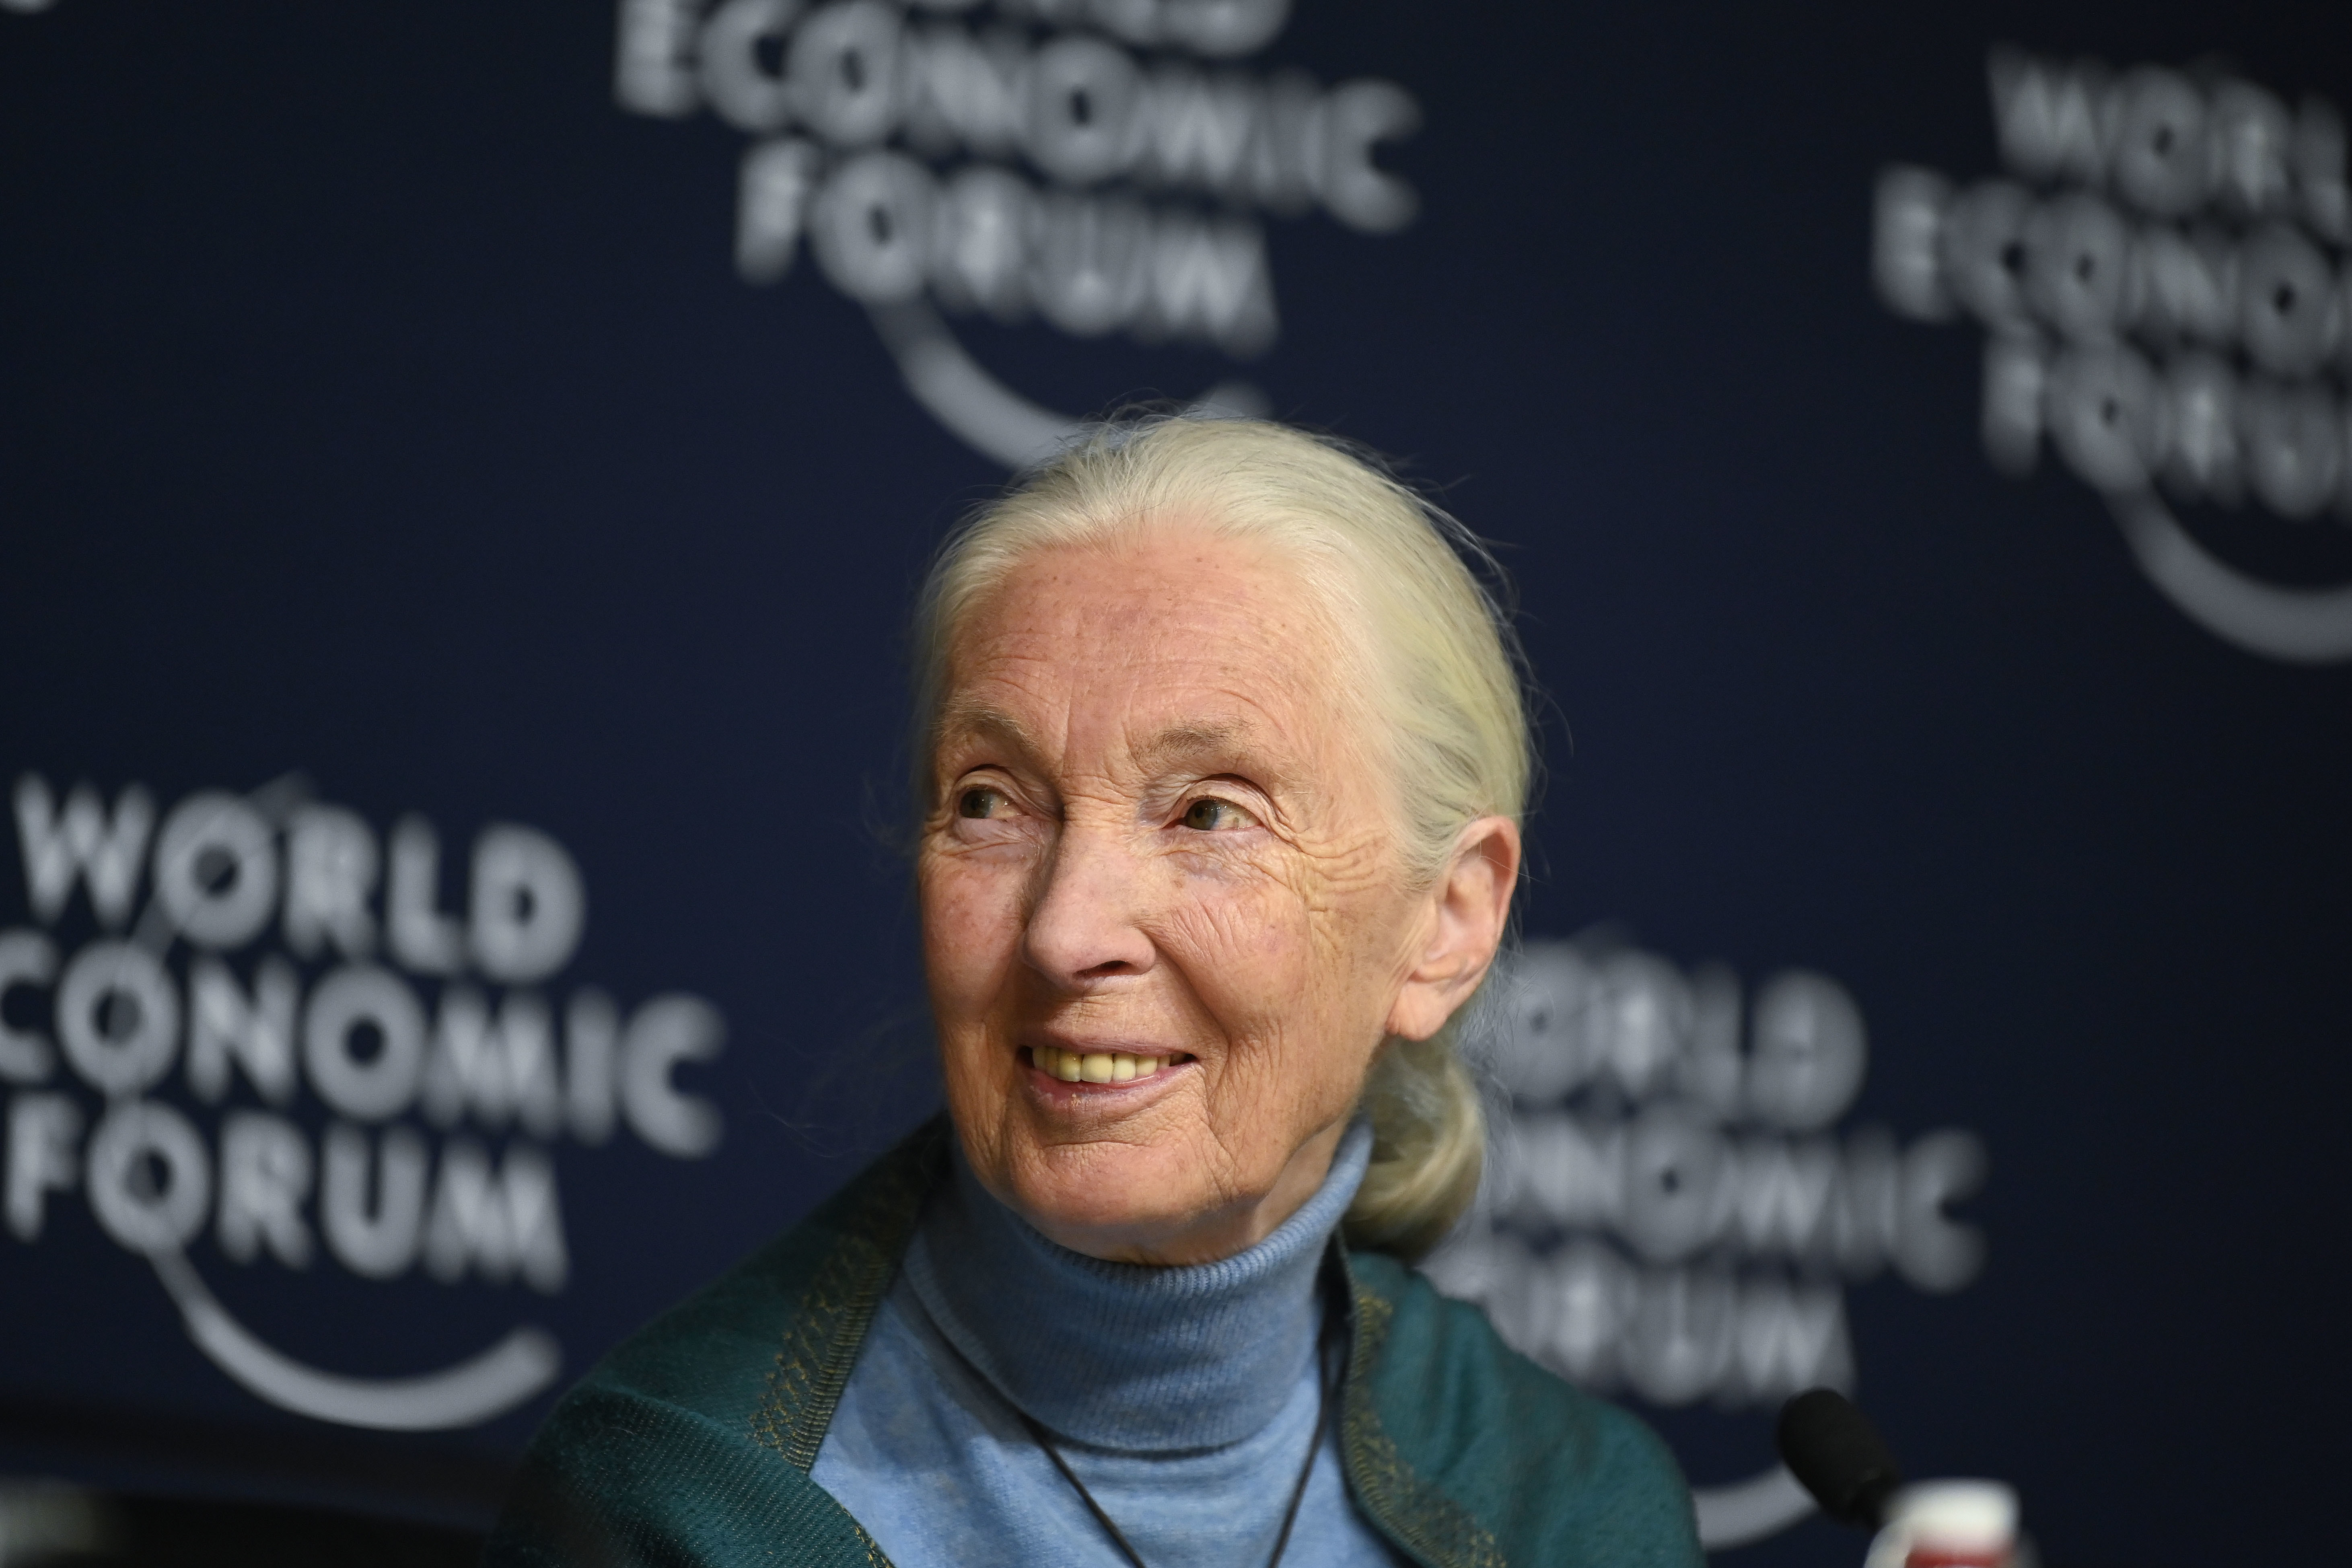 Jane Goodall, Founder Jane Goodall Institute, UK speaking in the One Trillion Trees session at the World Economic Forum Annual Meeting 2020 in Davos-Klosters, Switzerland, 22 January. Congress Centre - Press Conference Room. Copyright by World Economic Forum / Valeriano Di Domenico